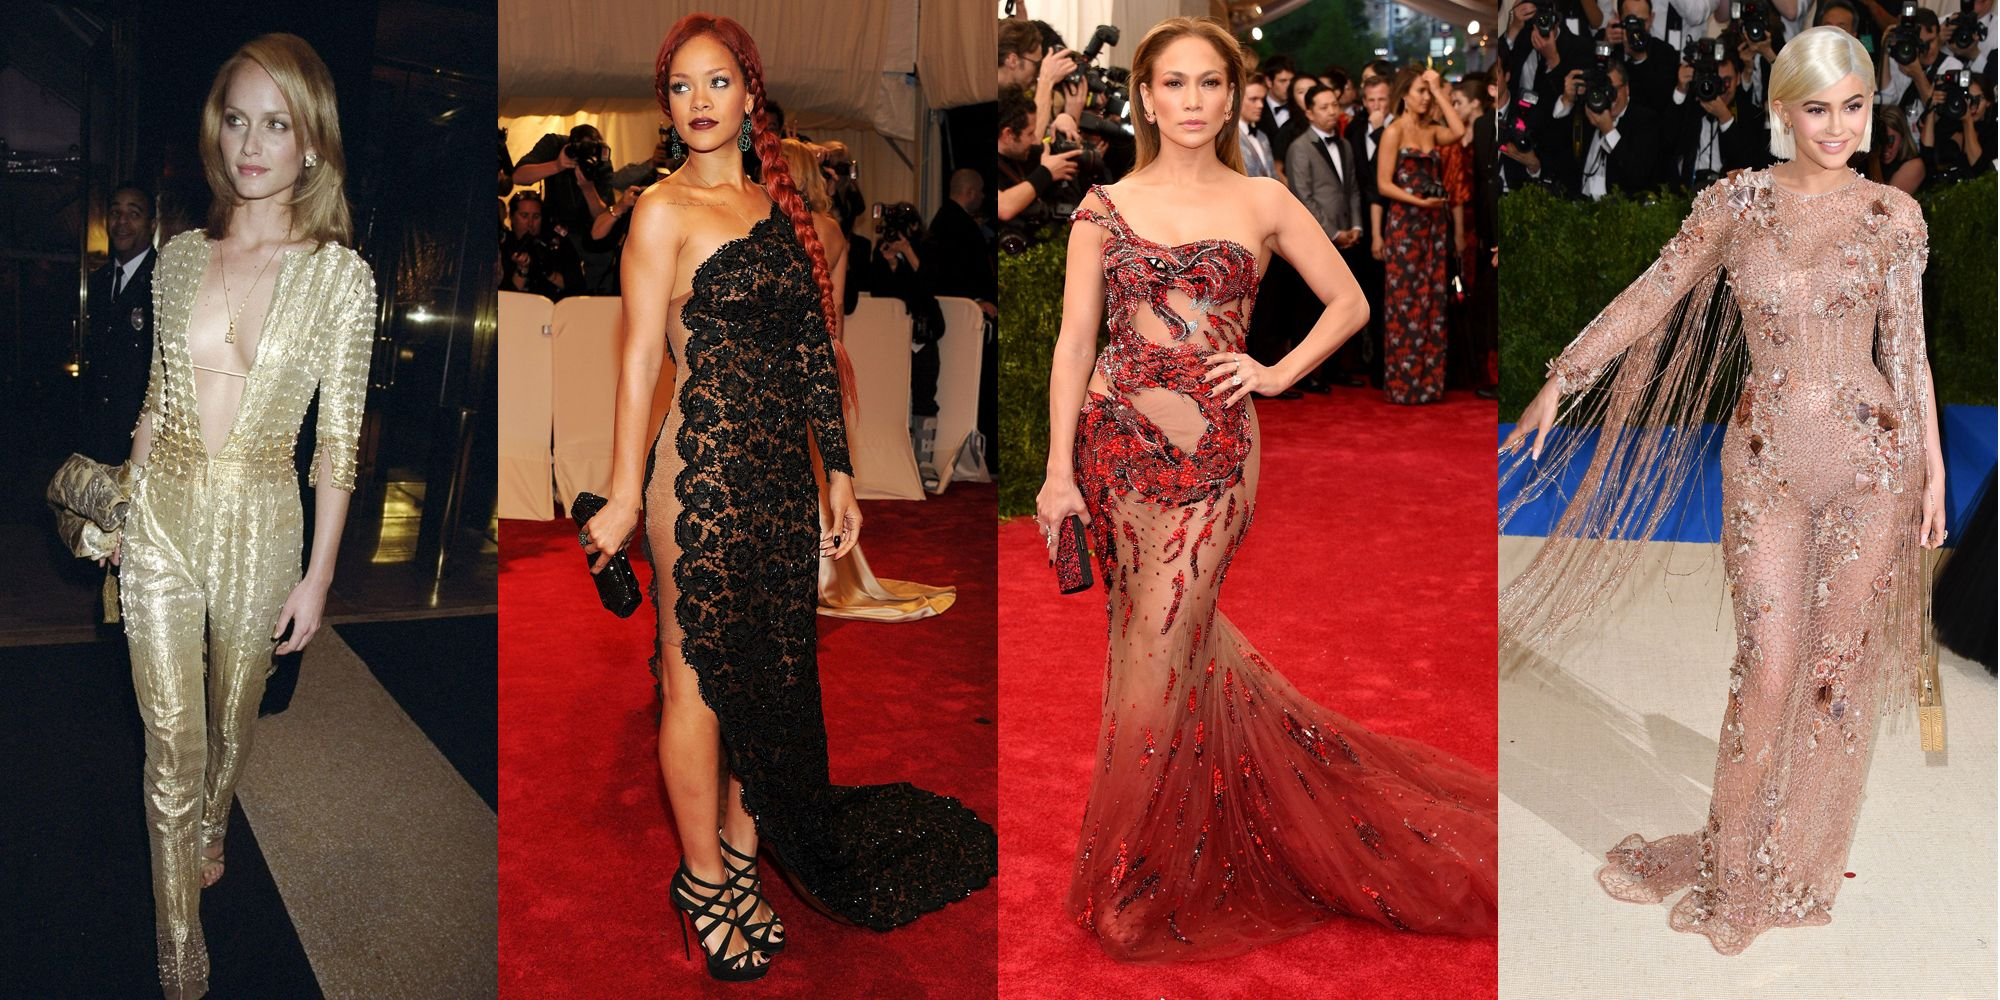 The Sexiest Met Gala Looks of All Time